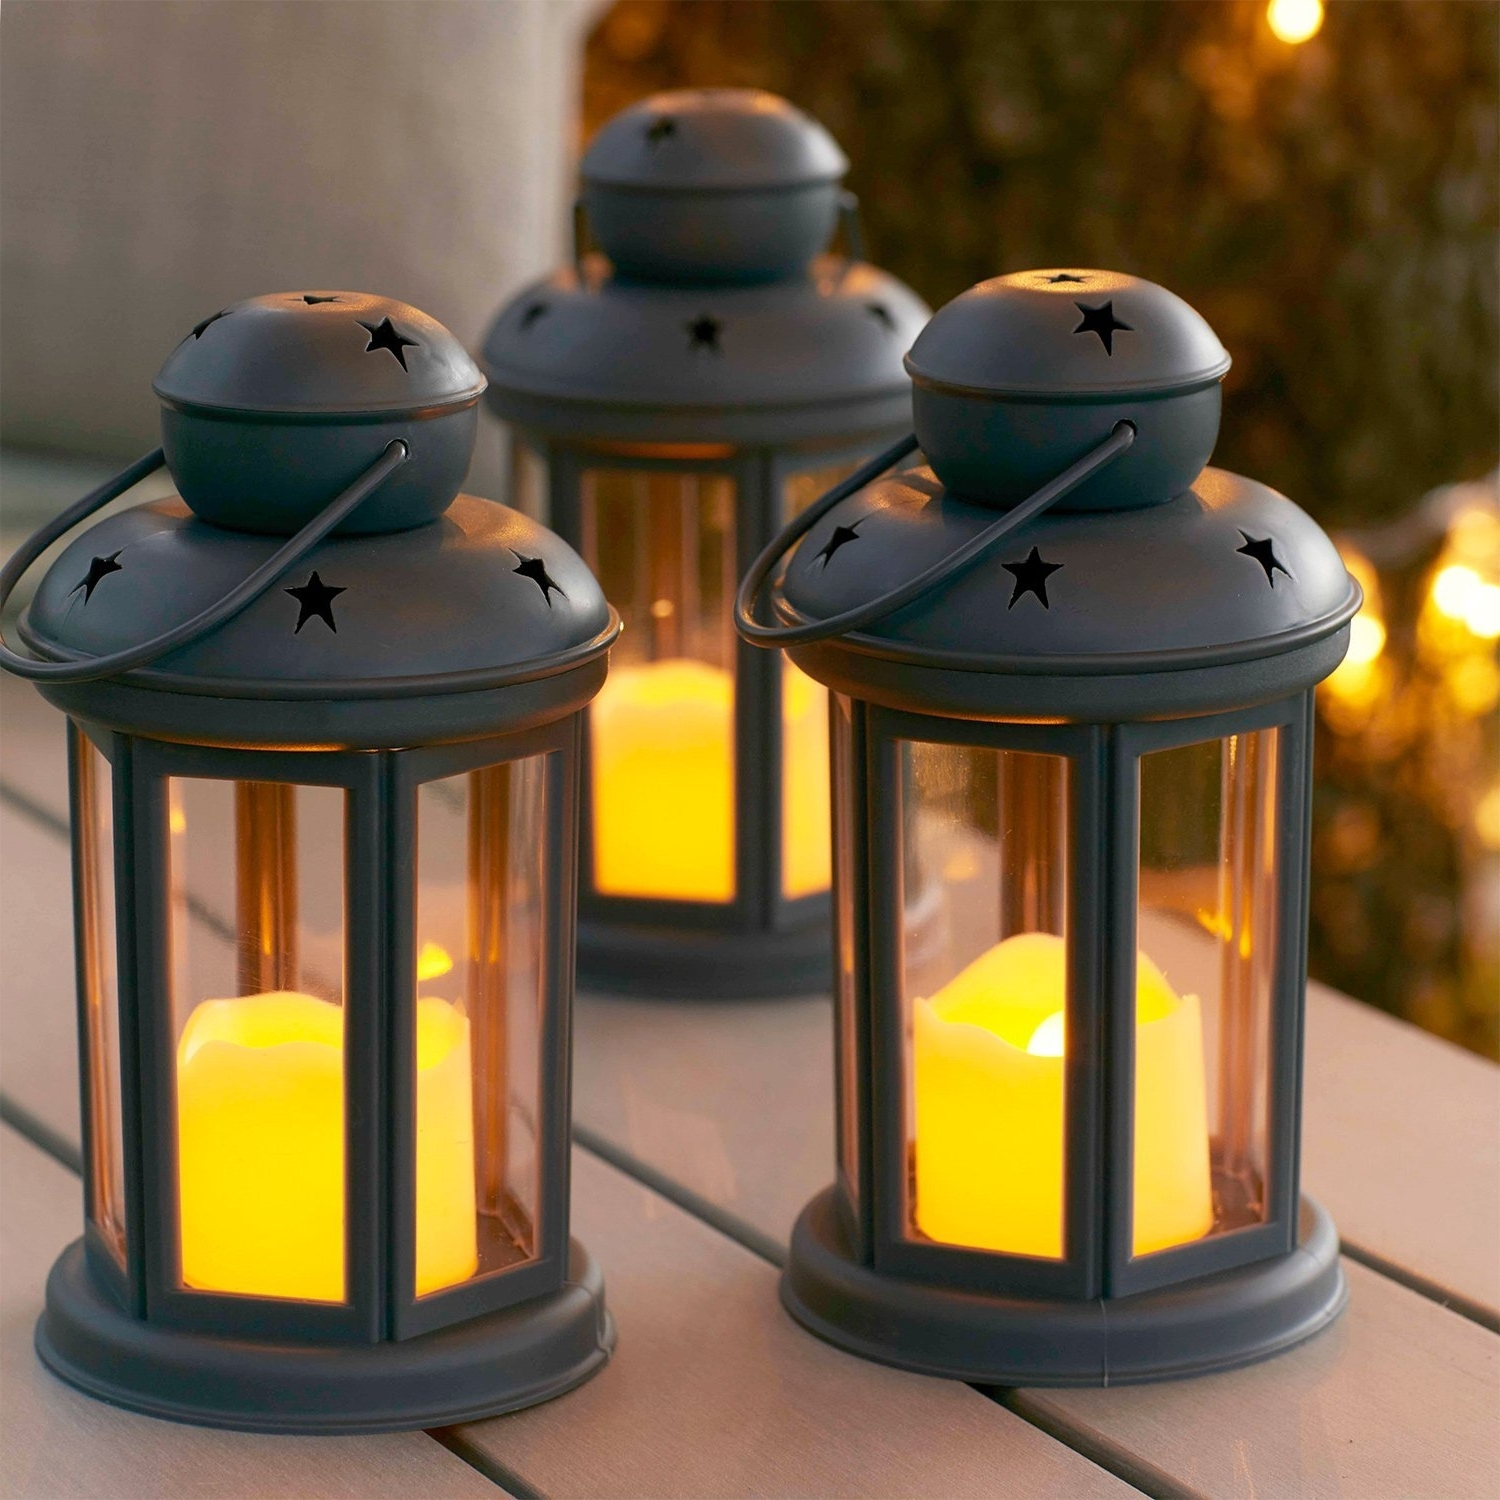 Plastic Lanterns Outdoor Lights – Awesome Home Pertaining To Most Recent Outdoor Plastic Lanterns (View 10 of 20)